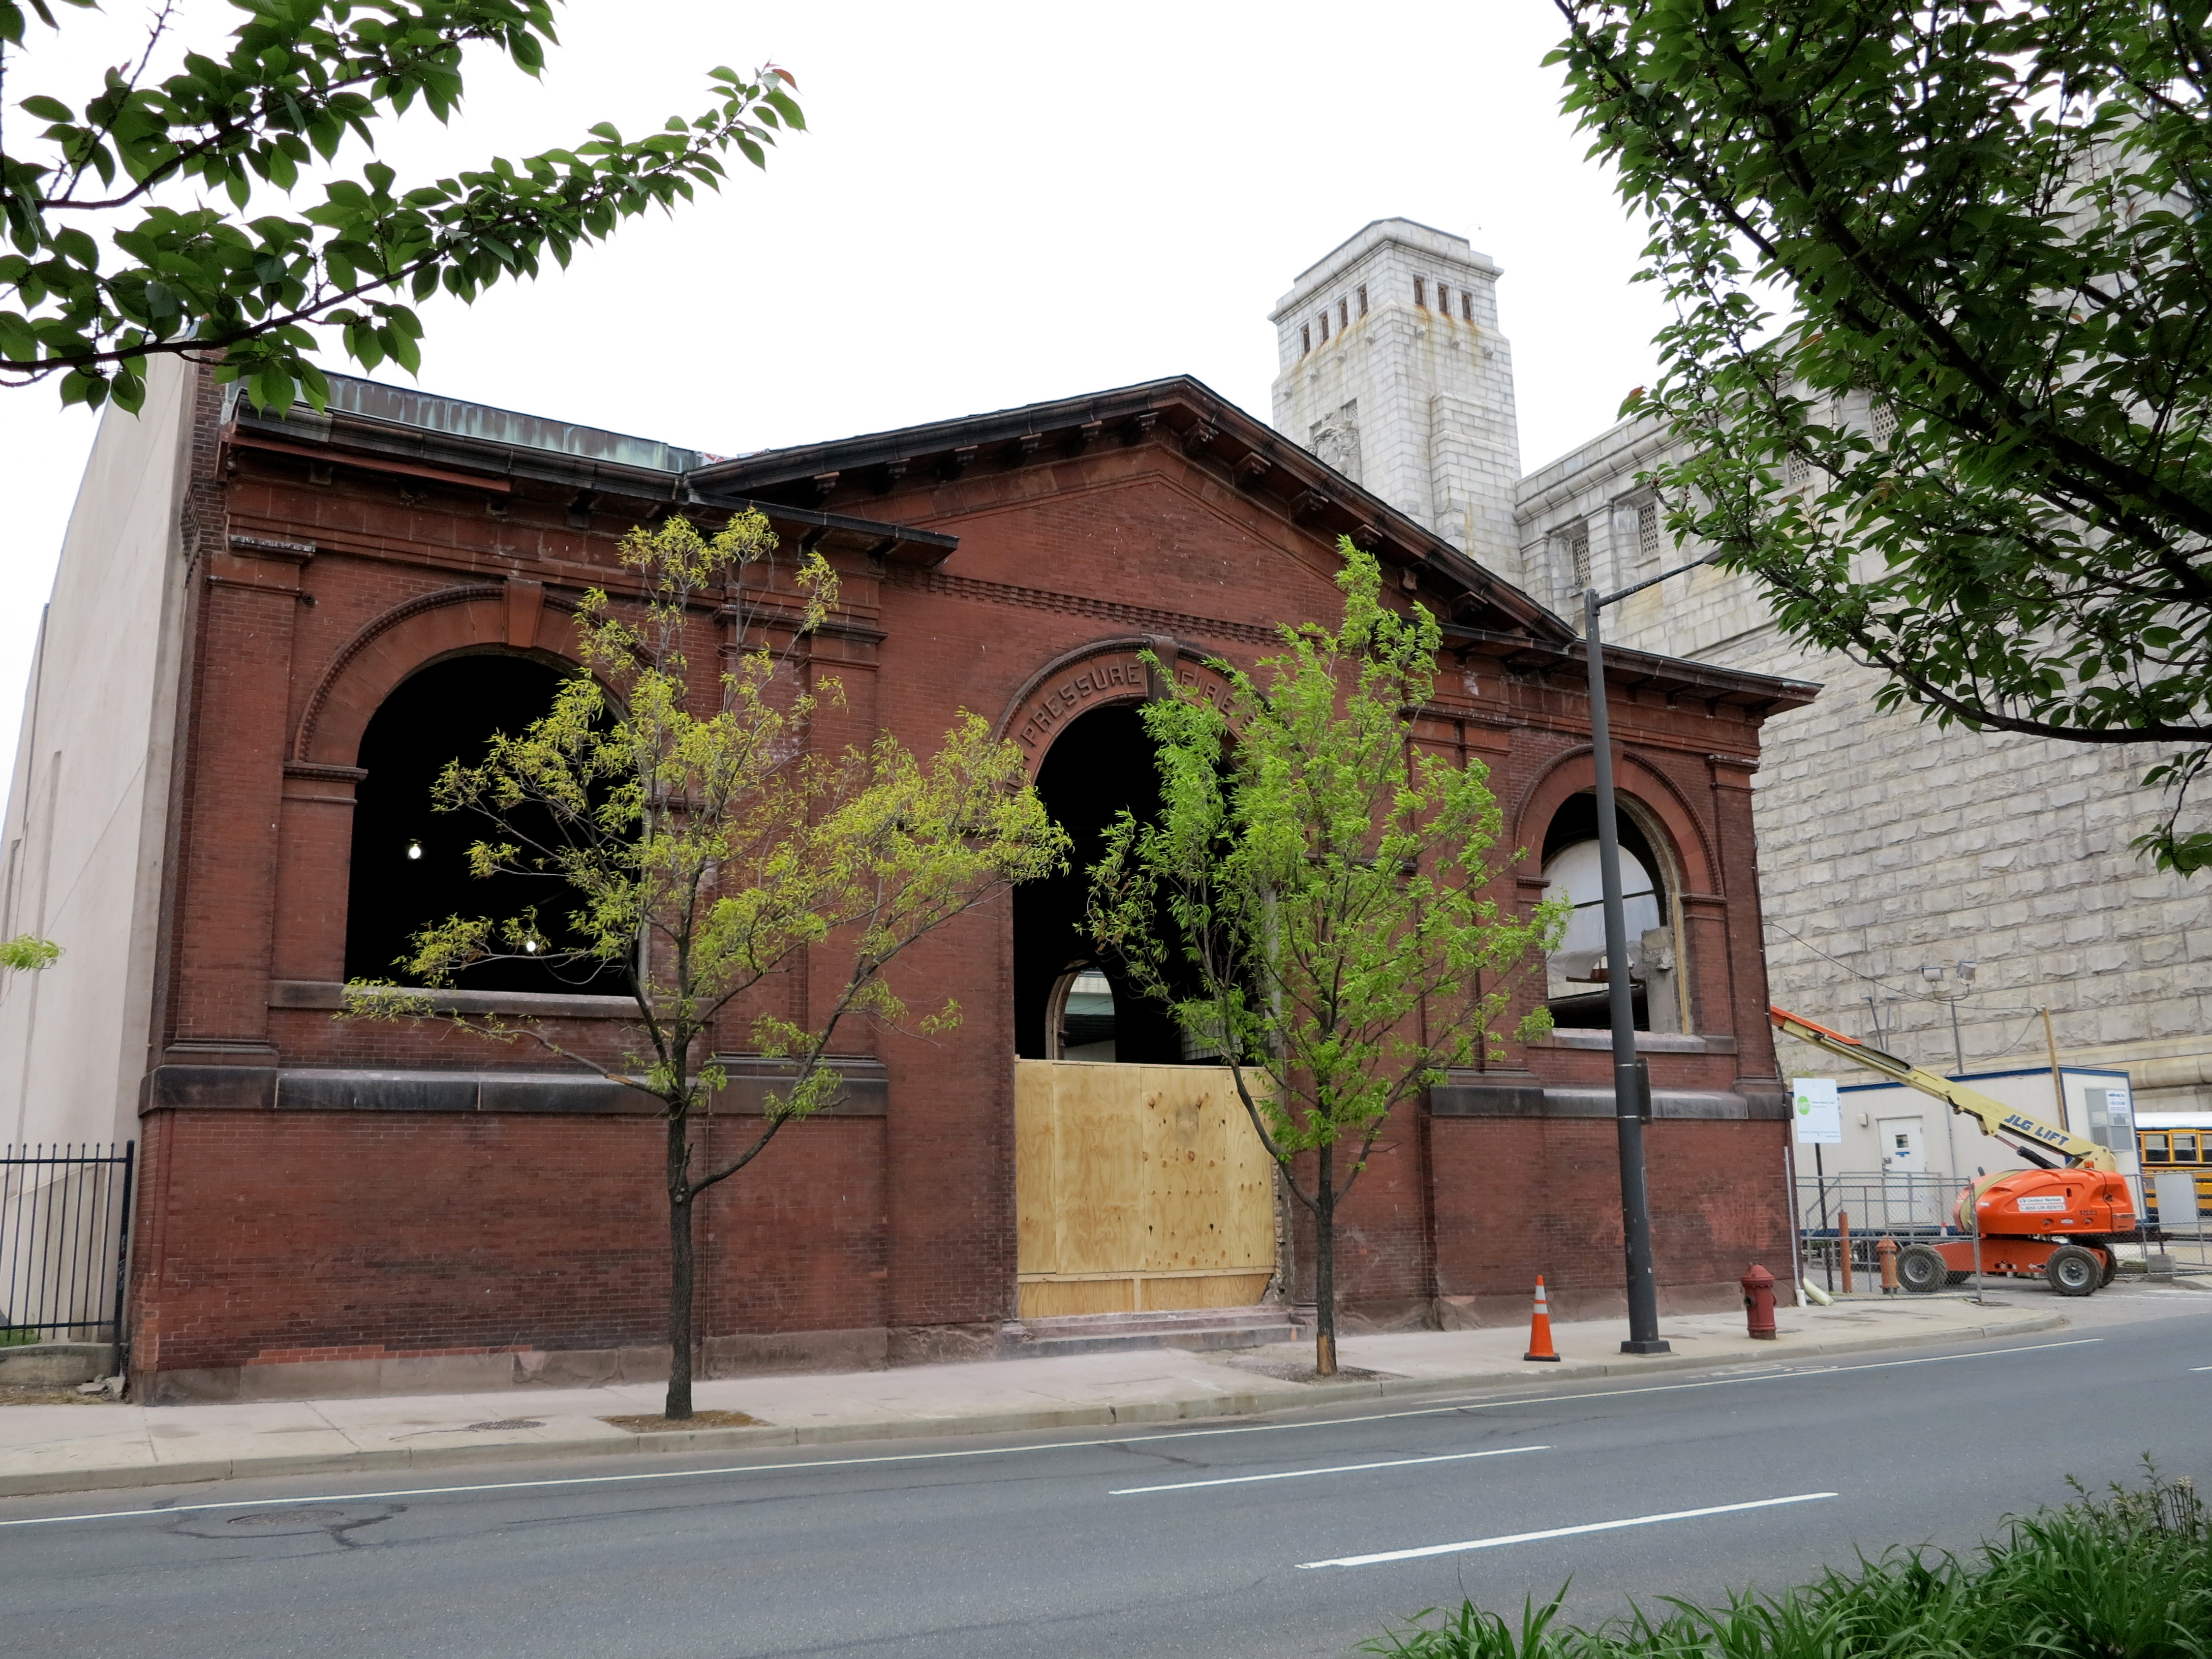 Future home of FringeArts, May 2013